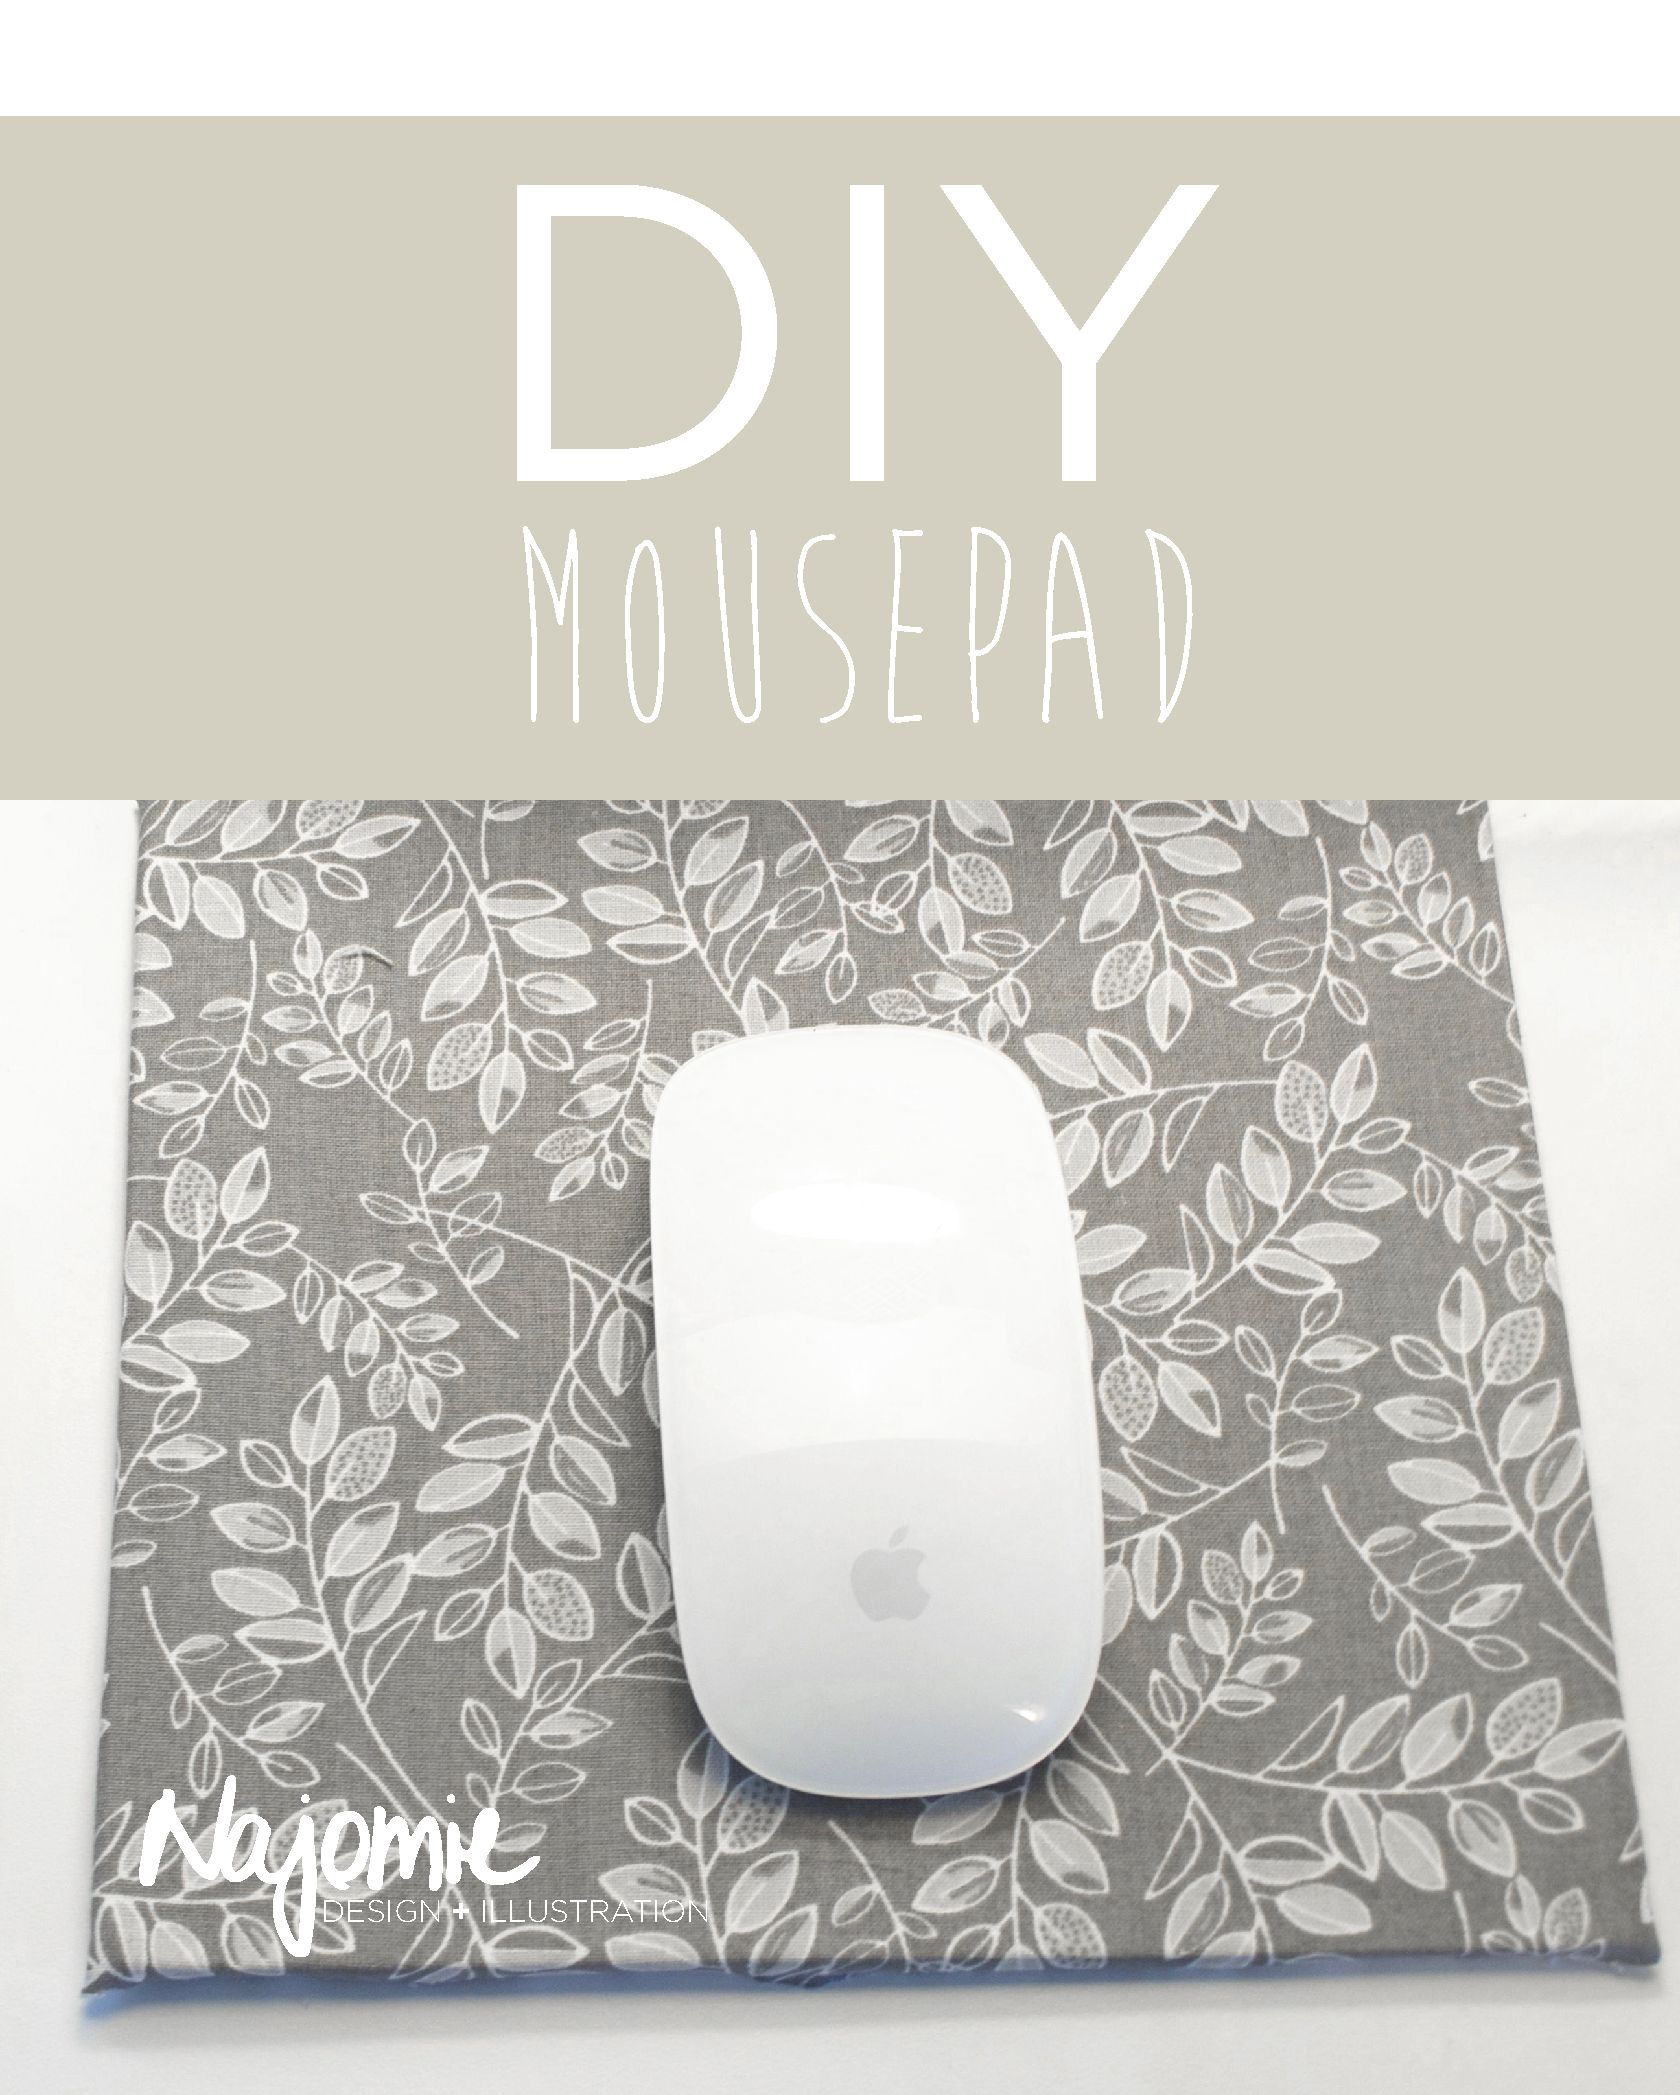 Diy Mouse Pad Ideas How To Make For Men Budget Tutorials Easy